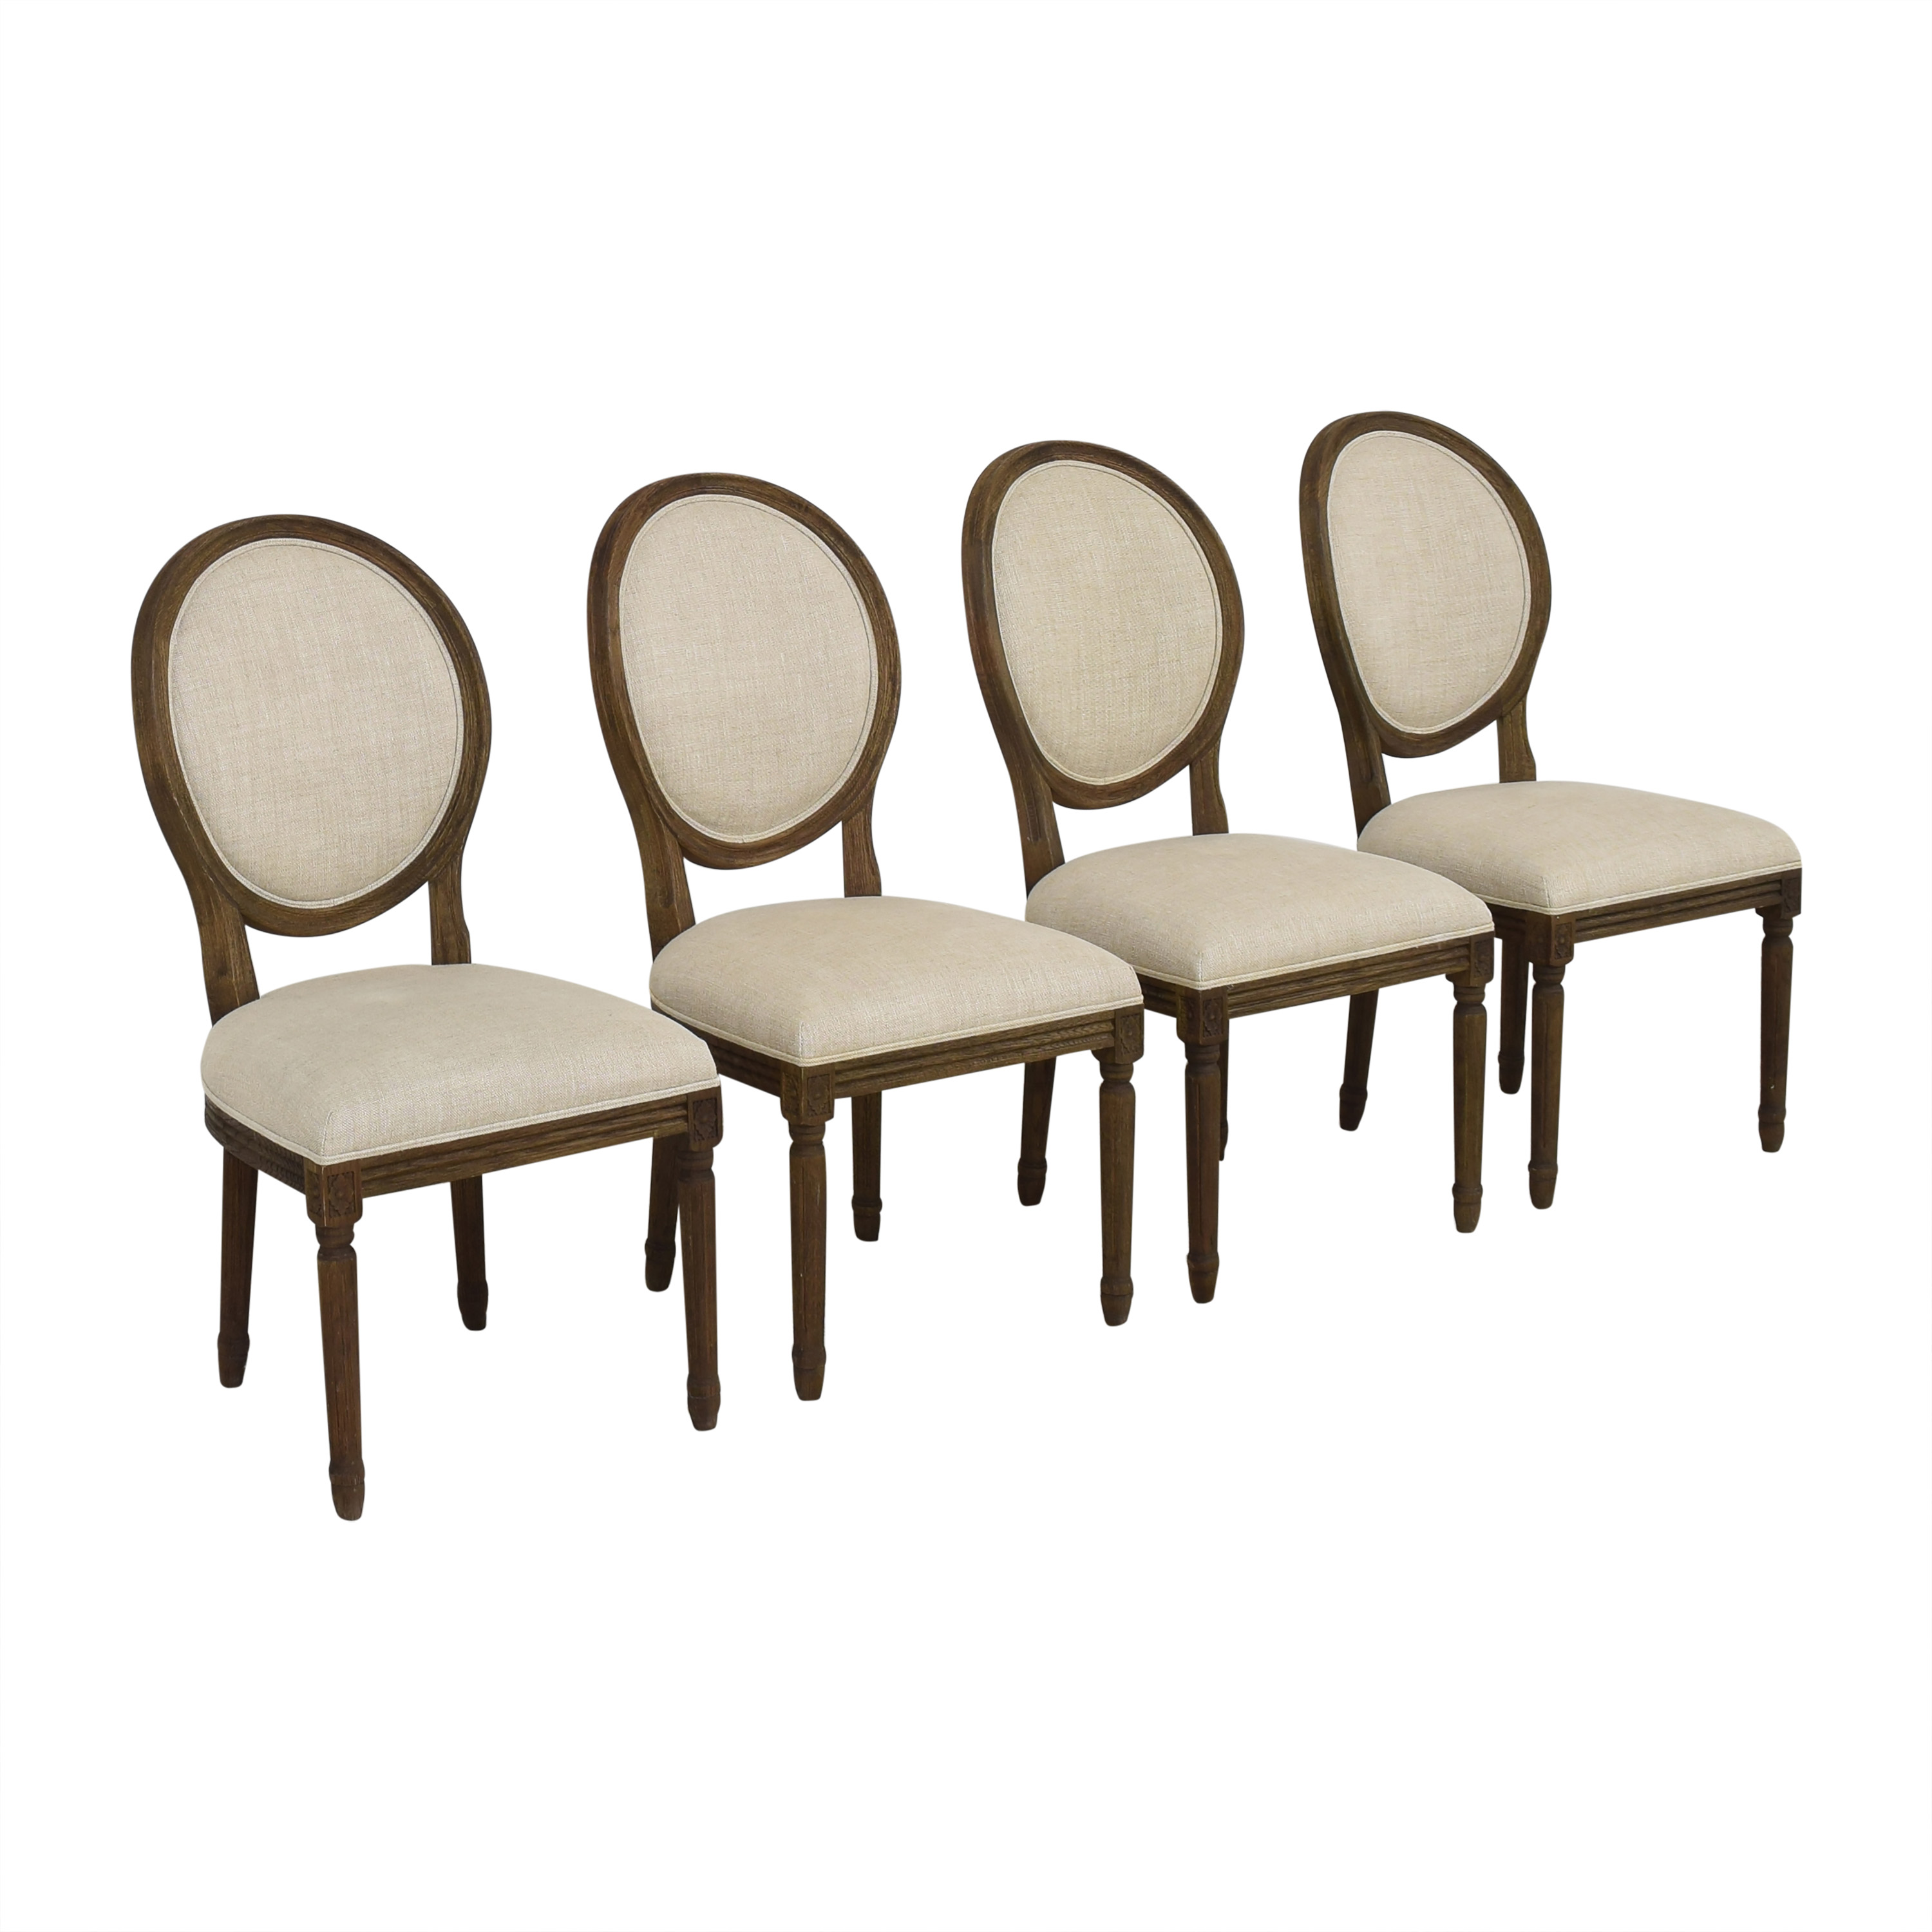 Restoration Hardware Restoration Hardware Vintage French Round Dining Side Chairs nyc